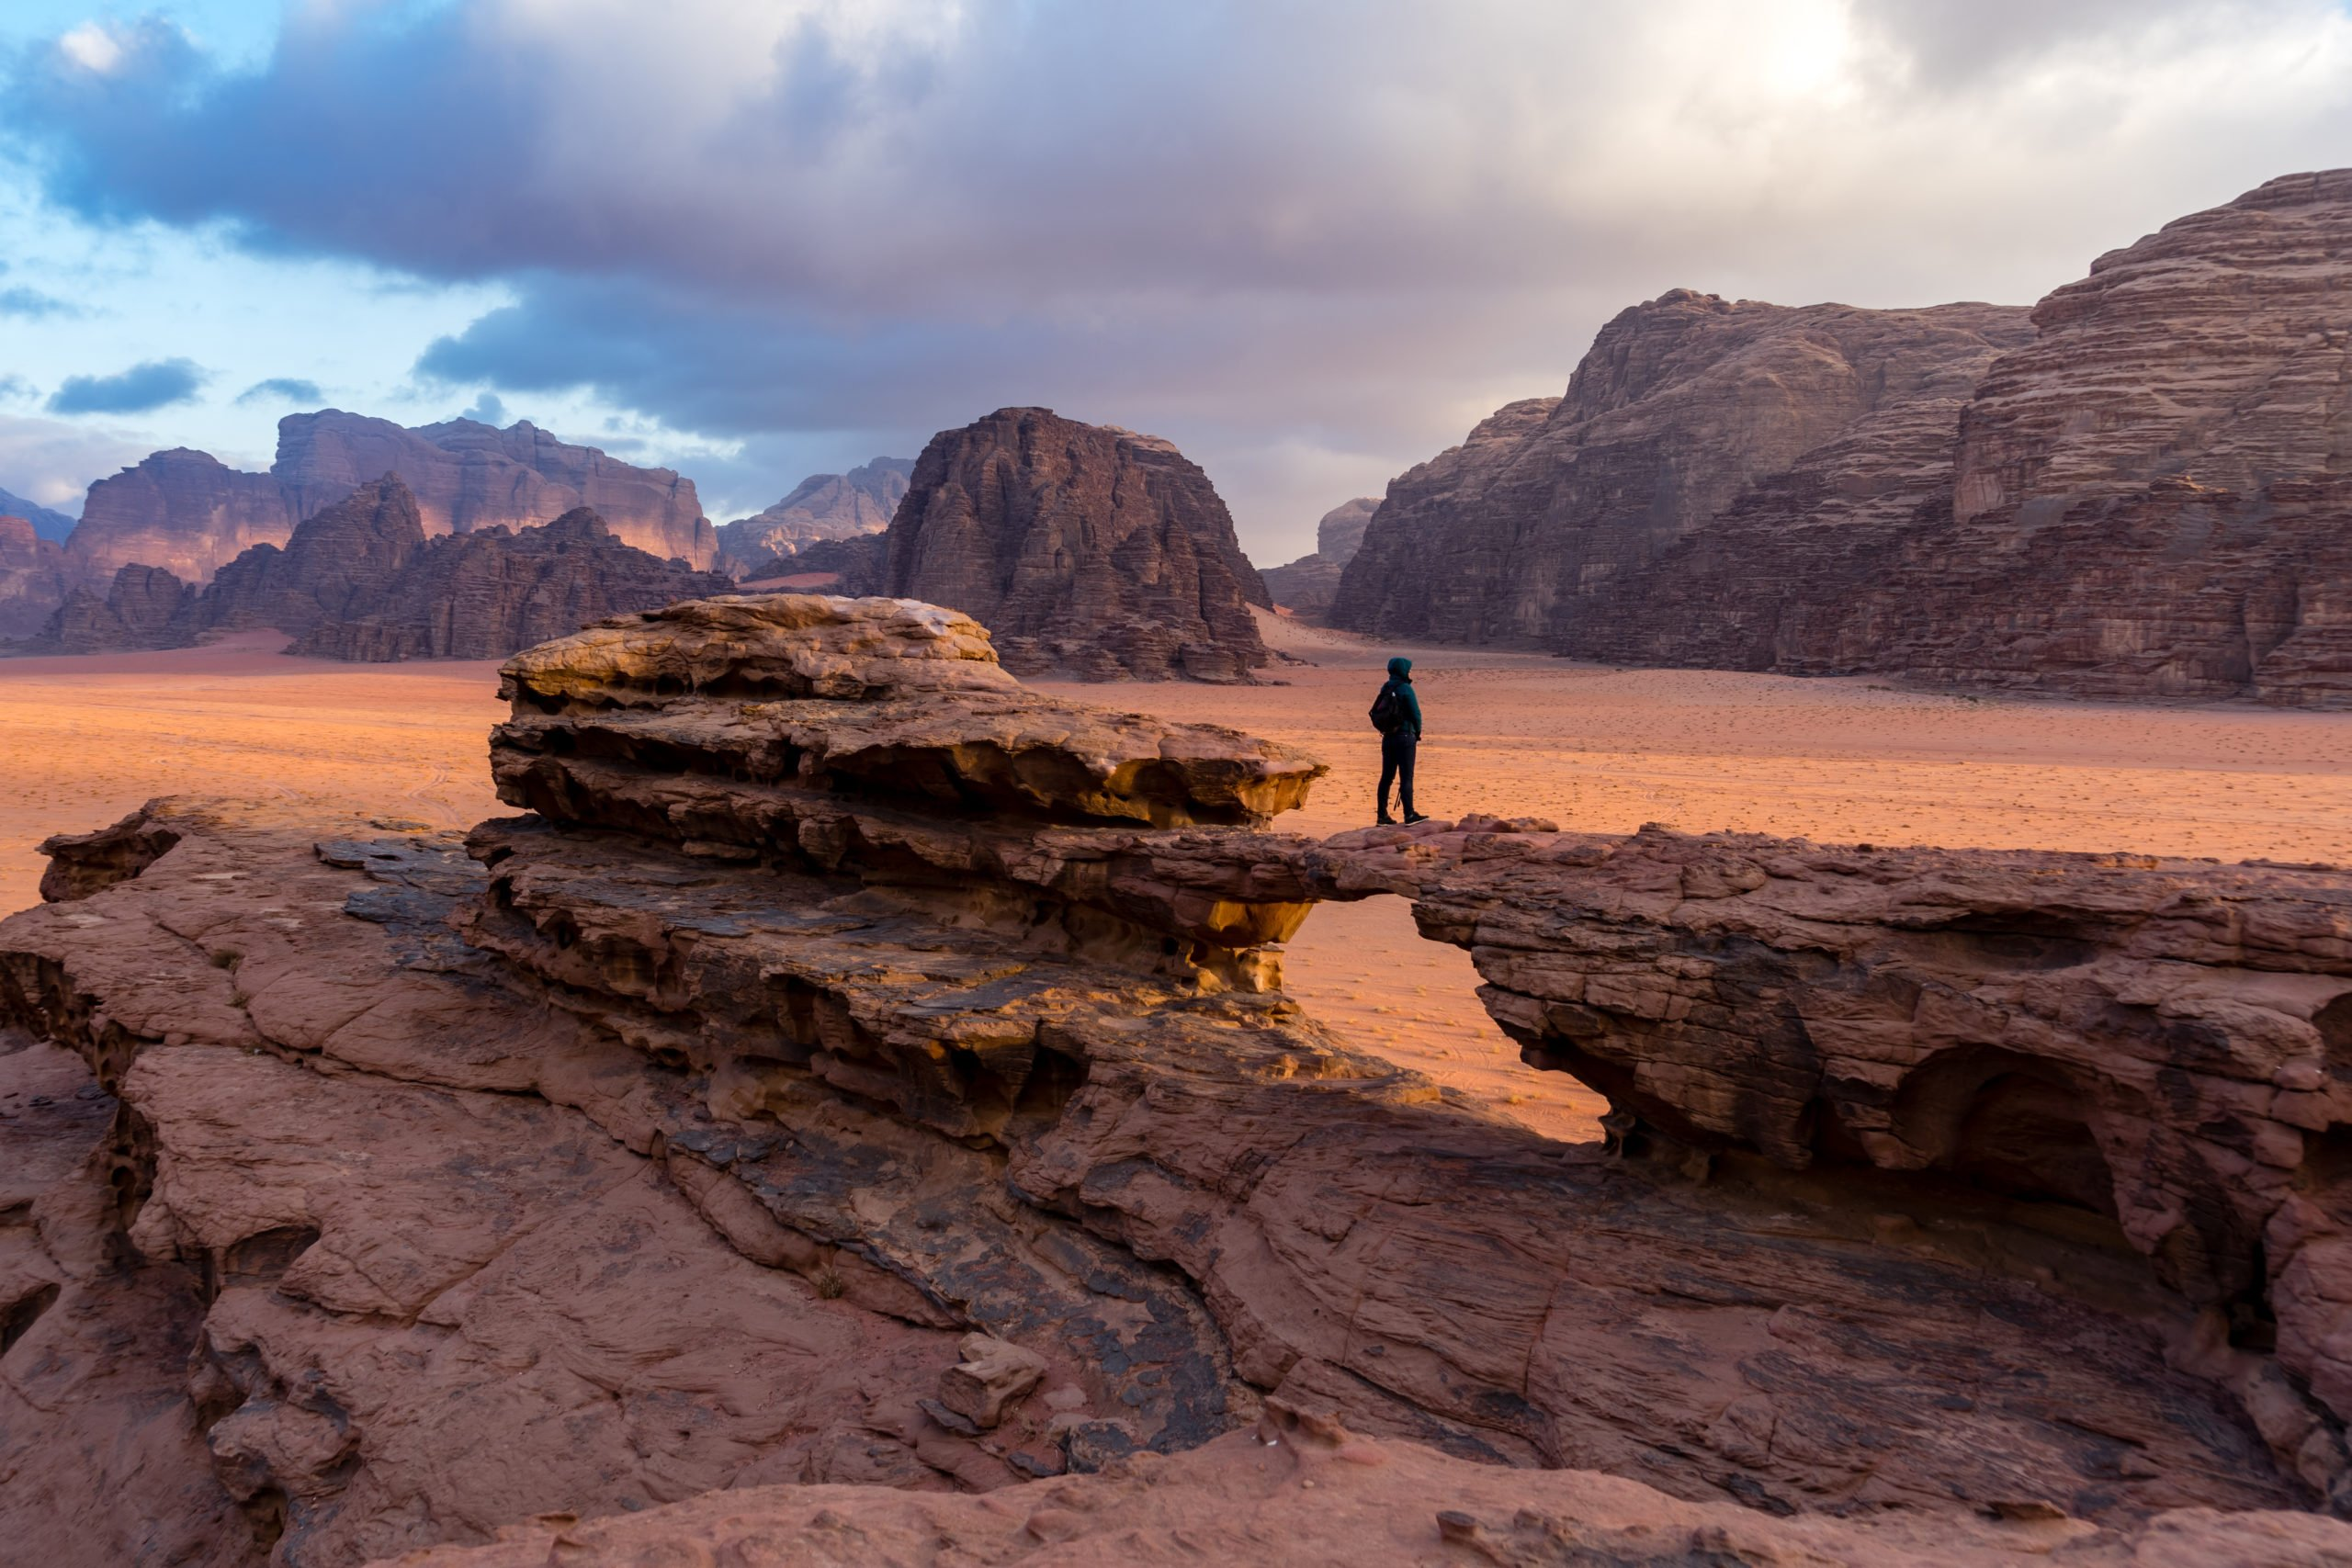 Experience The Beauty Of Wadi Rum During The 10 Day Jordan, Dubai And Abu Dhabi Package Tour